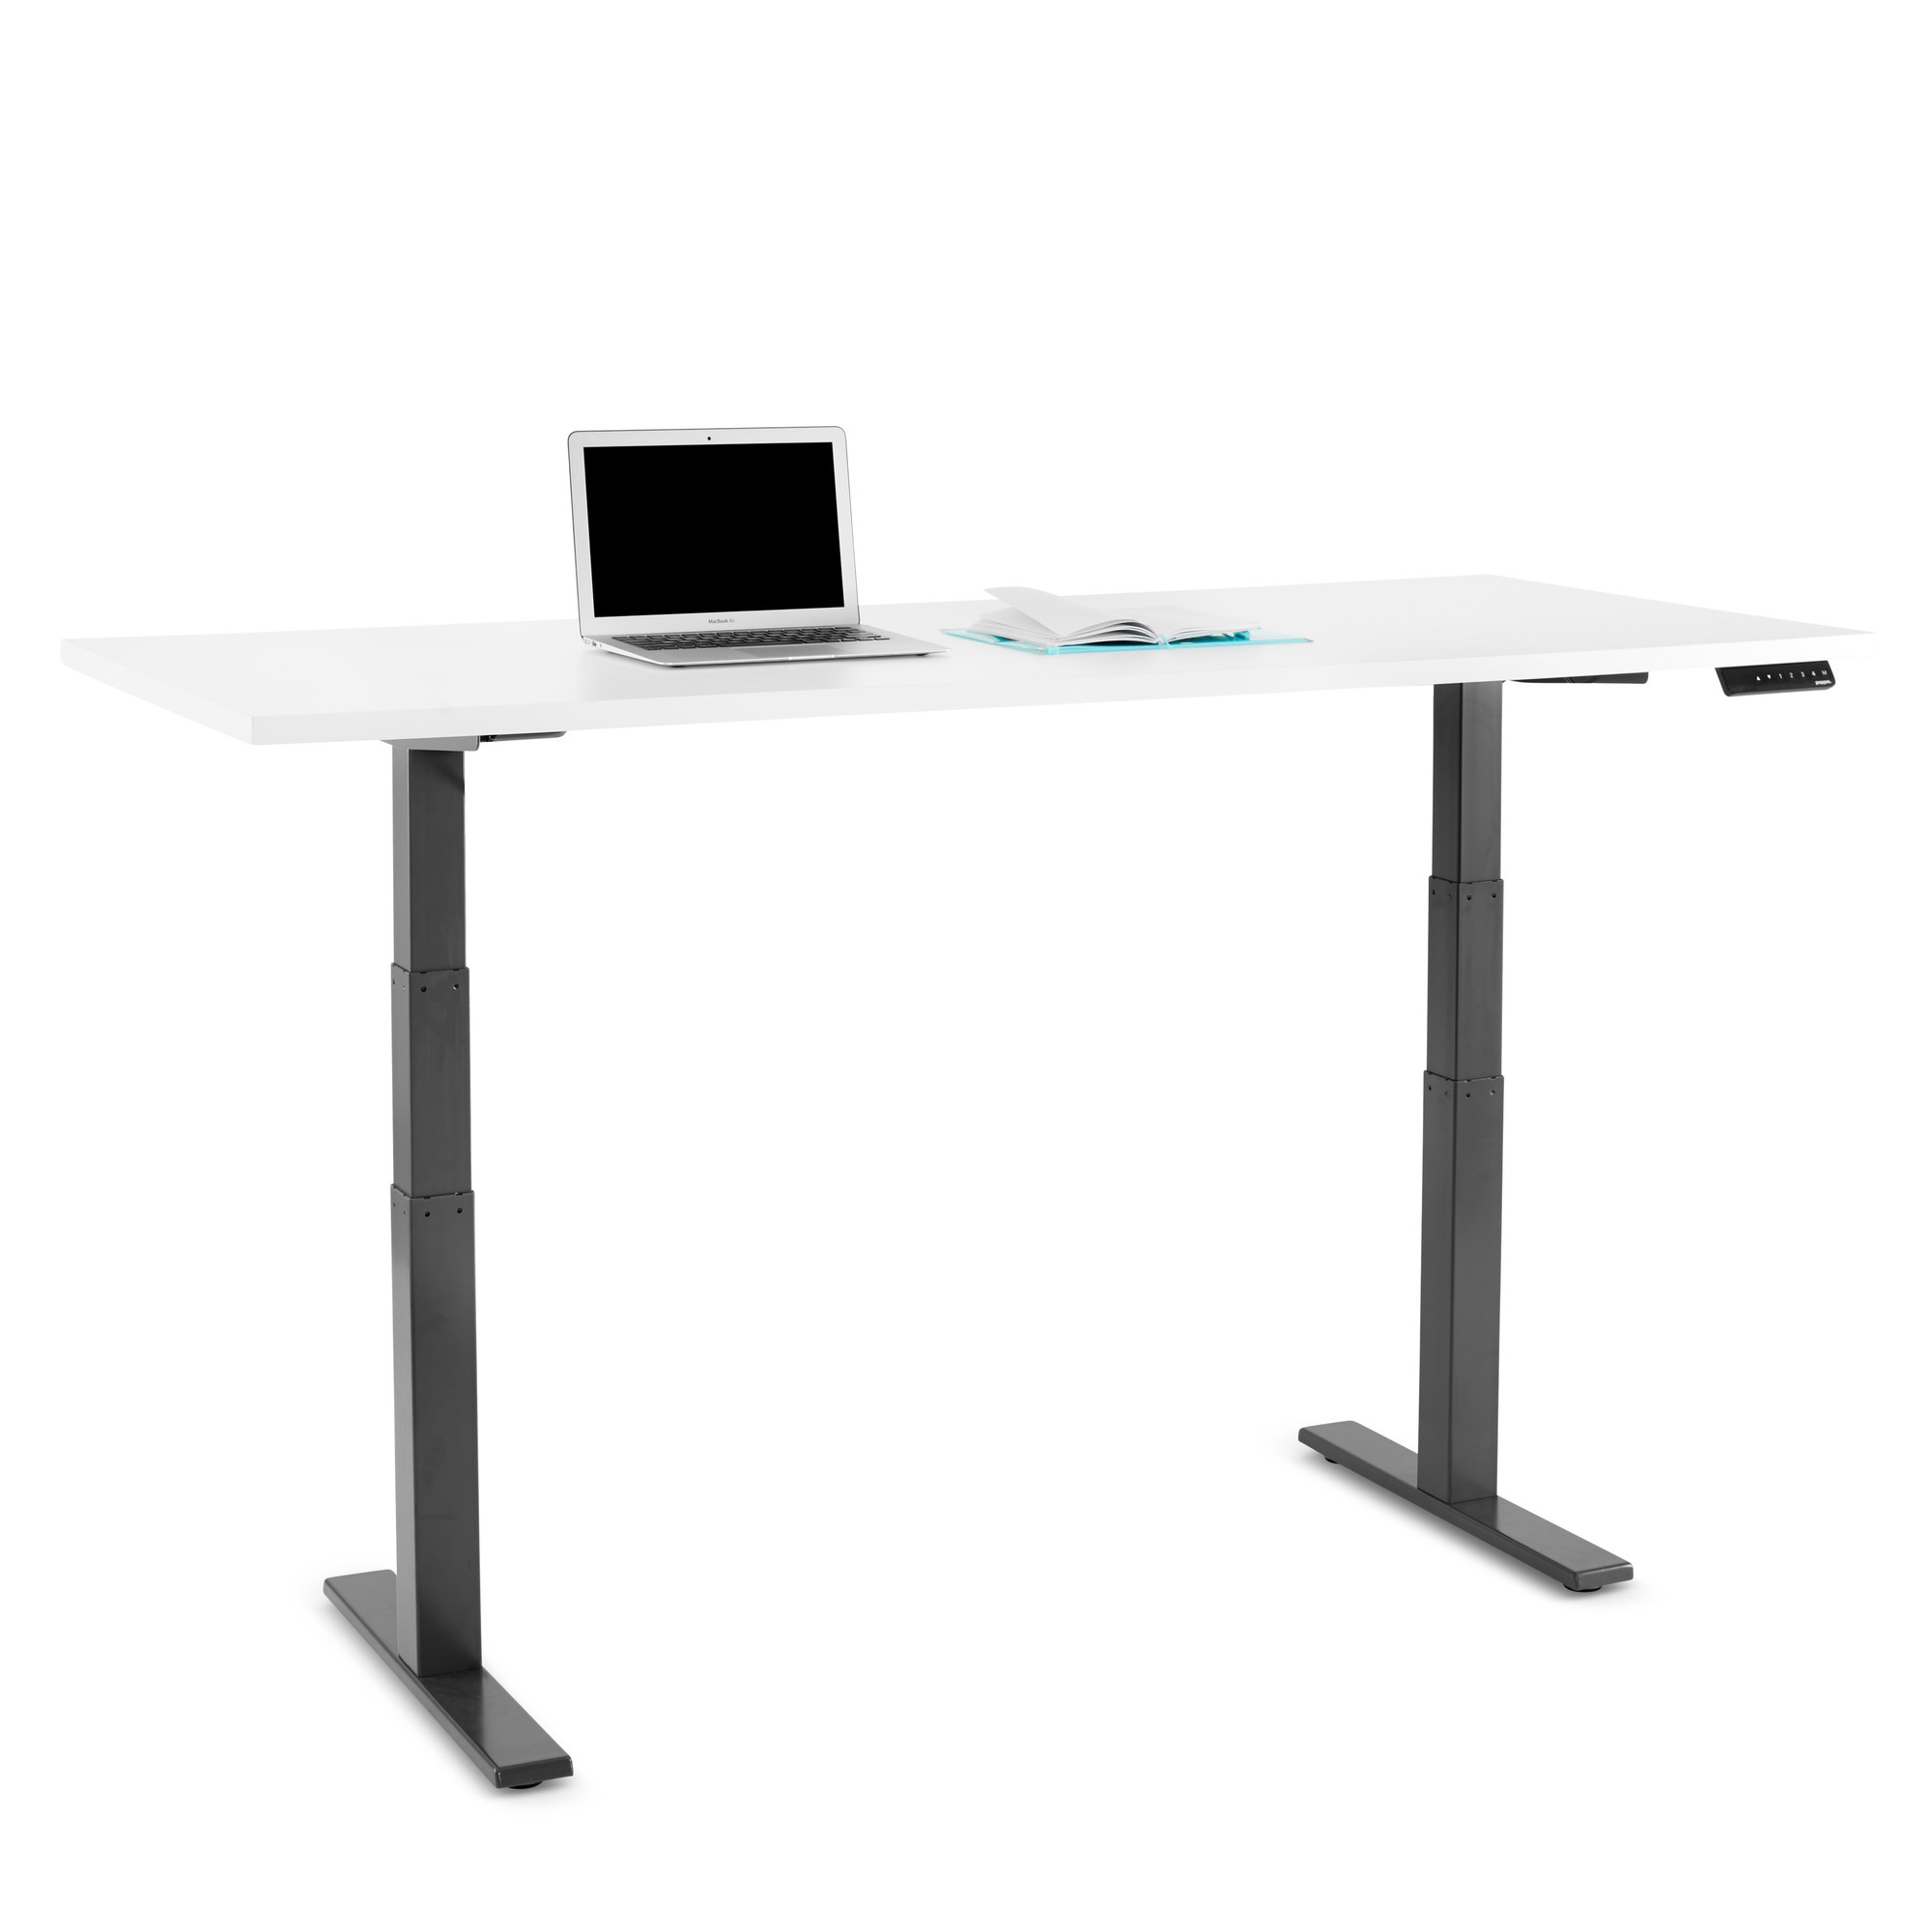 Series l adjustable height table charcoal legs adjustable height desks poppin